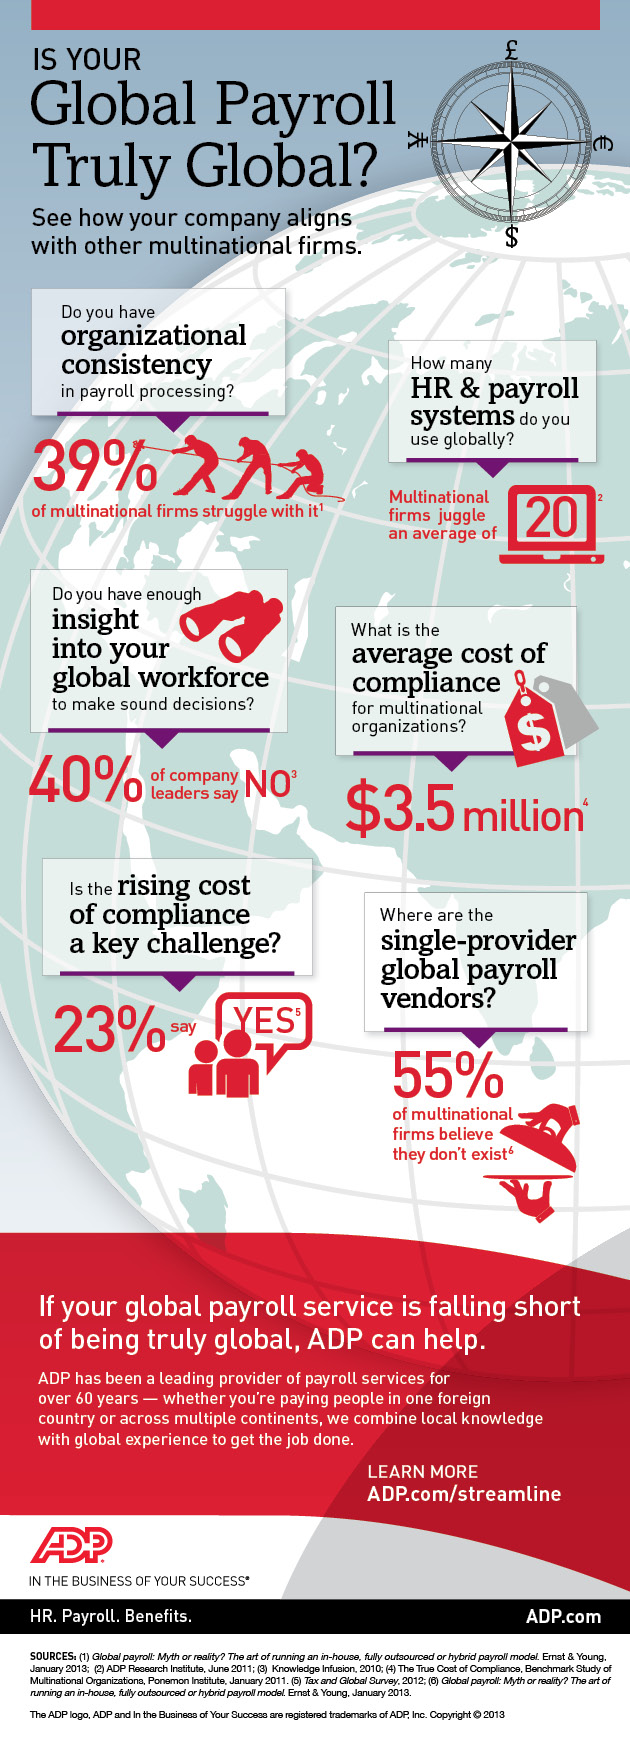 Infographic: Is Your Global Payroll Truly Global?